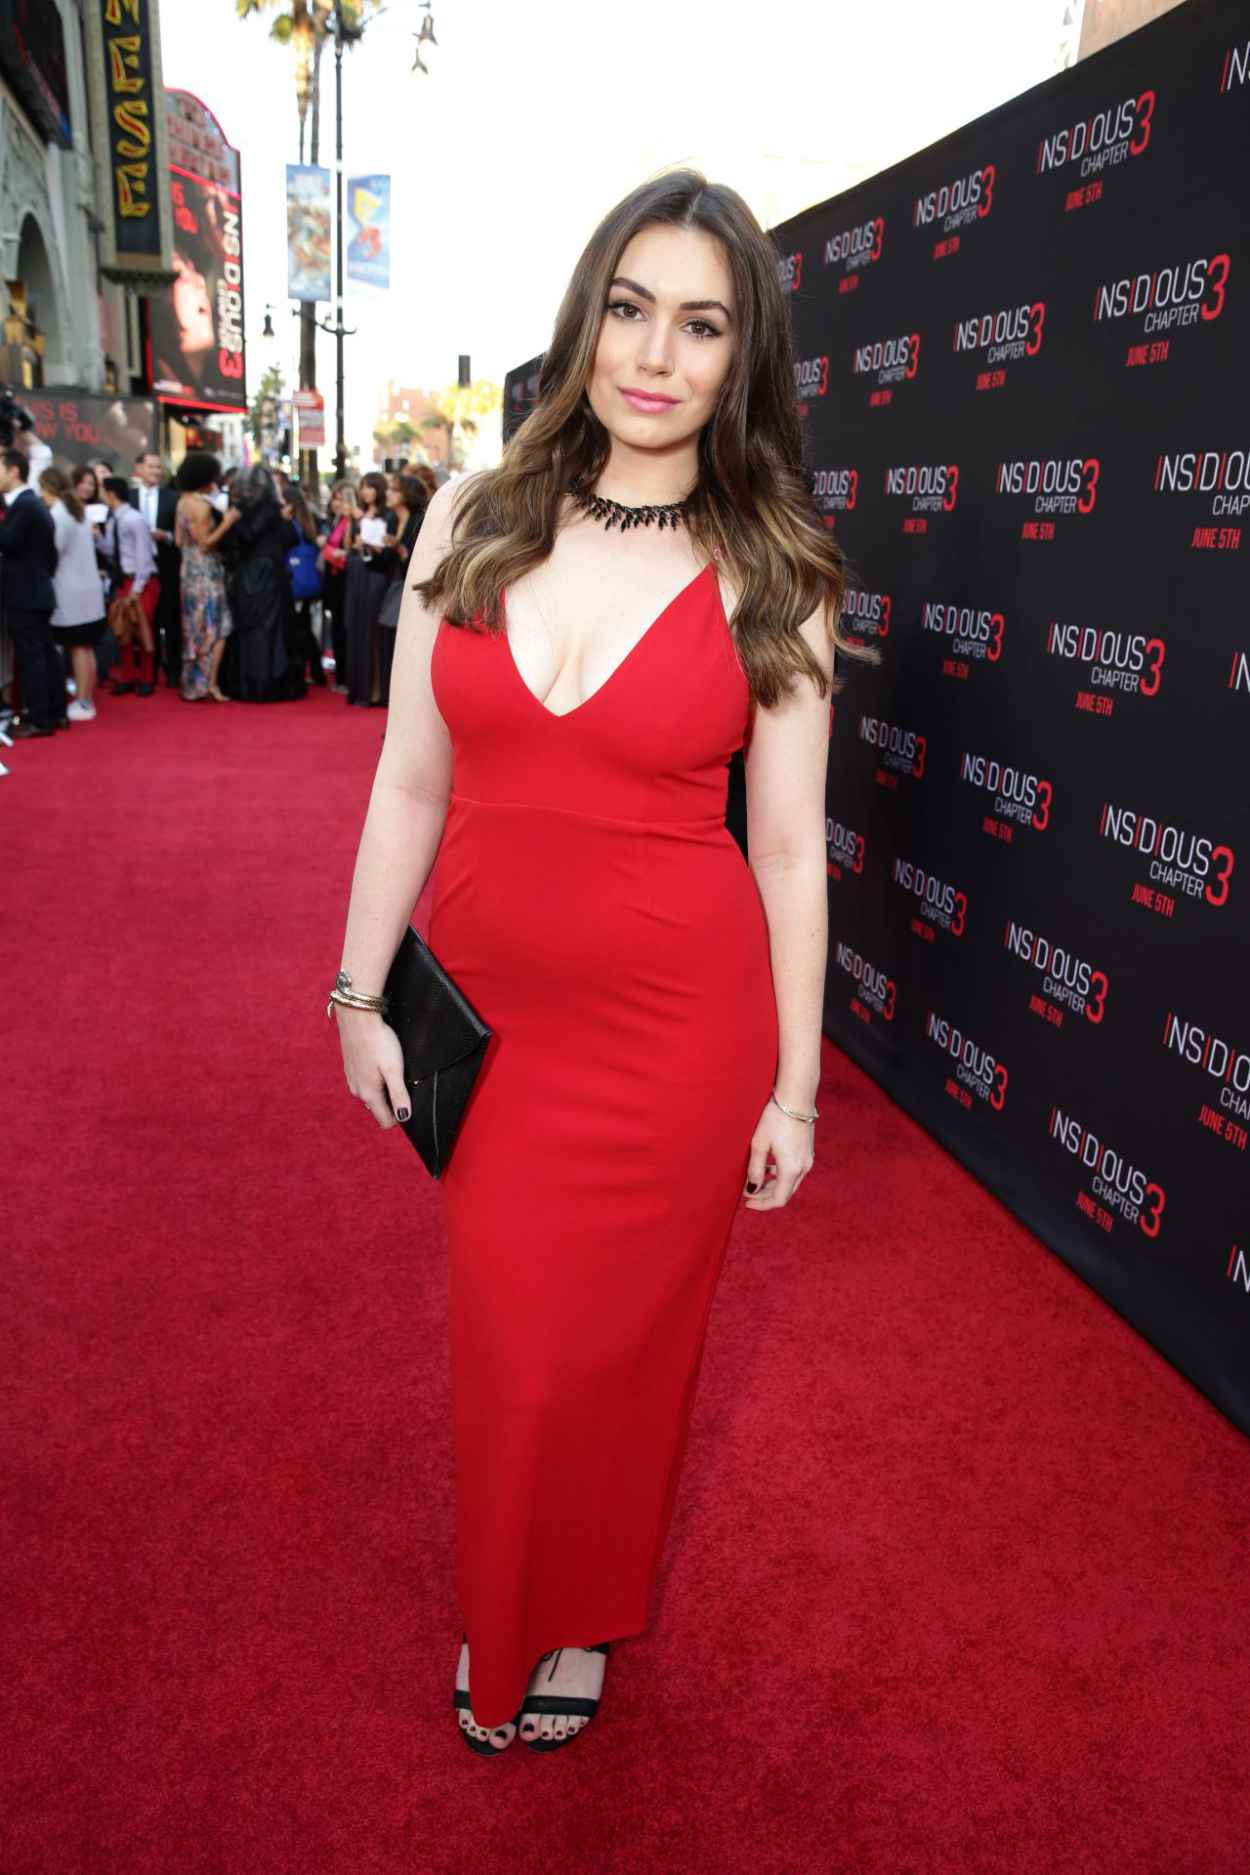 Sophie Simmons - Insidious Chapter 3 Premiere in Hollywood-4